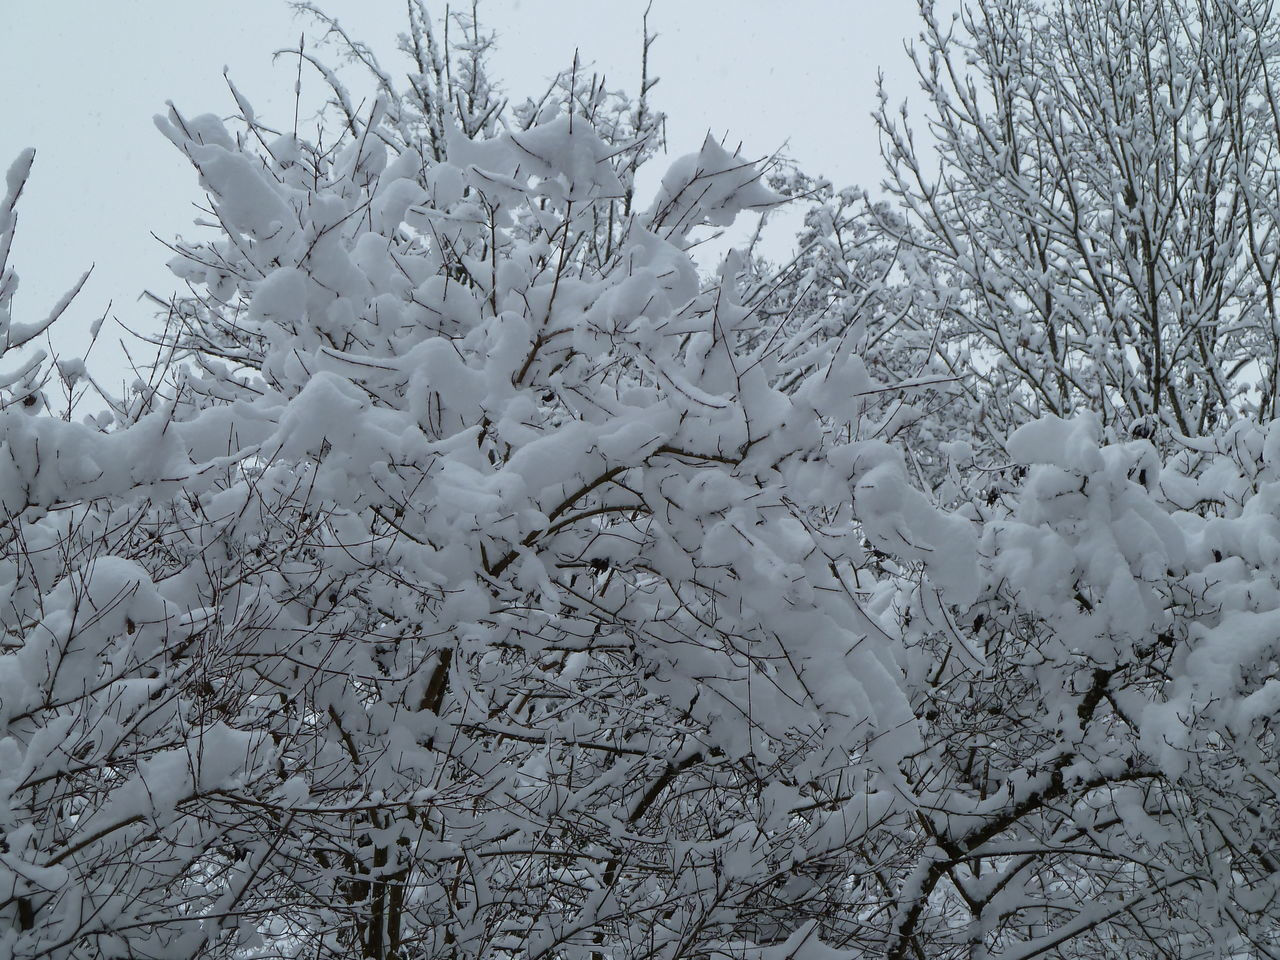 nature, winter, cold temperature, no people, beauty in nature, white color, outdoors, day, snow, tranquility, branch, plant, tree, bare tree, scenics, sky, freshness, close-up